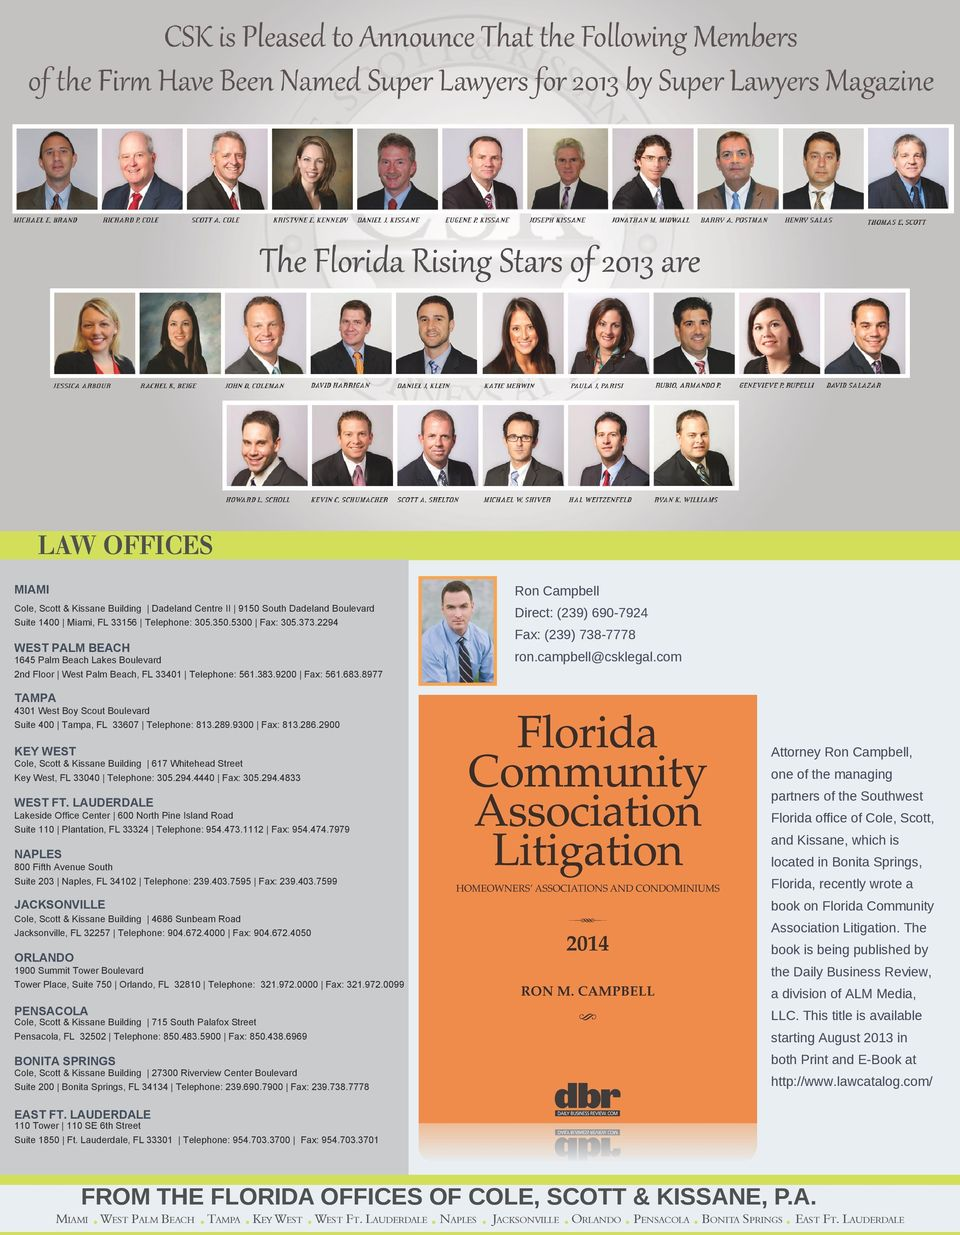 campbell@csklegal.com TAMPA 4301 West Boy Scout Boulevard Suite 400 Tampa, FL 33607 Telephone: 813.289.9300 Fax: 813.286.